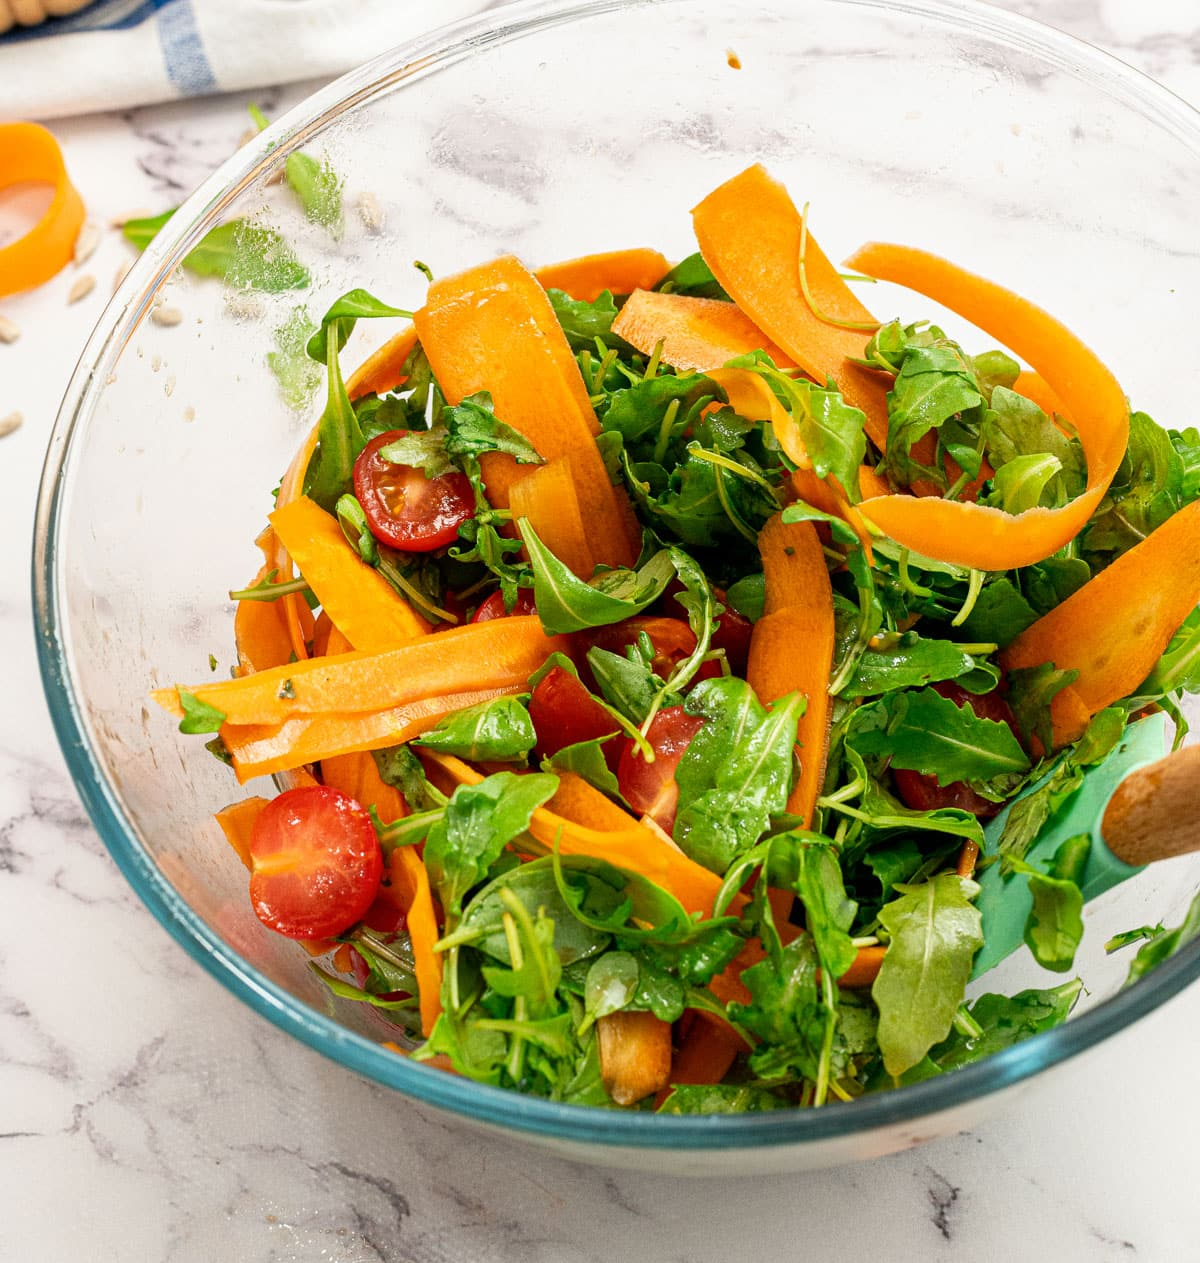 Arugula, shaved carrots, and tomatoes in a bowl